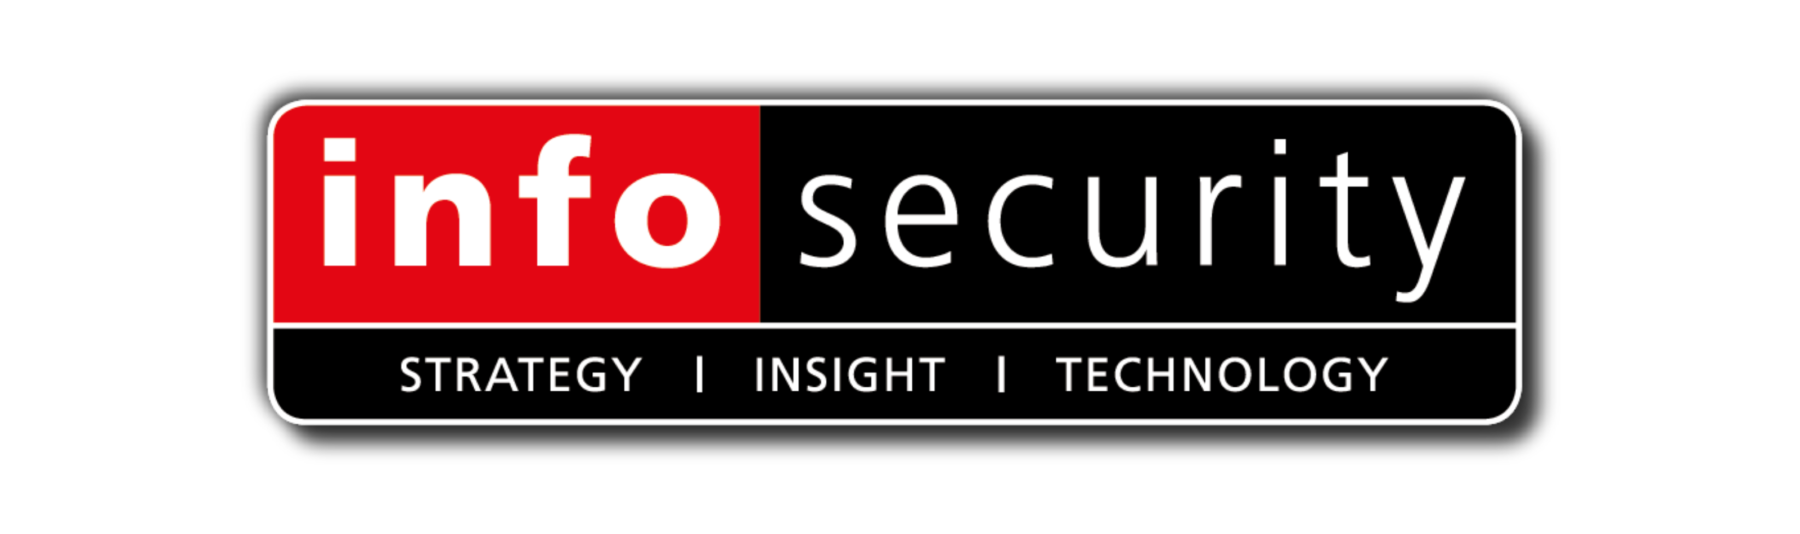 Smile On Fridays secured coverage in Infosecurity Magazine for OneLogin